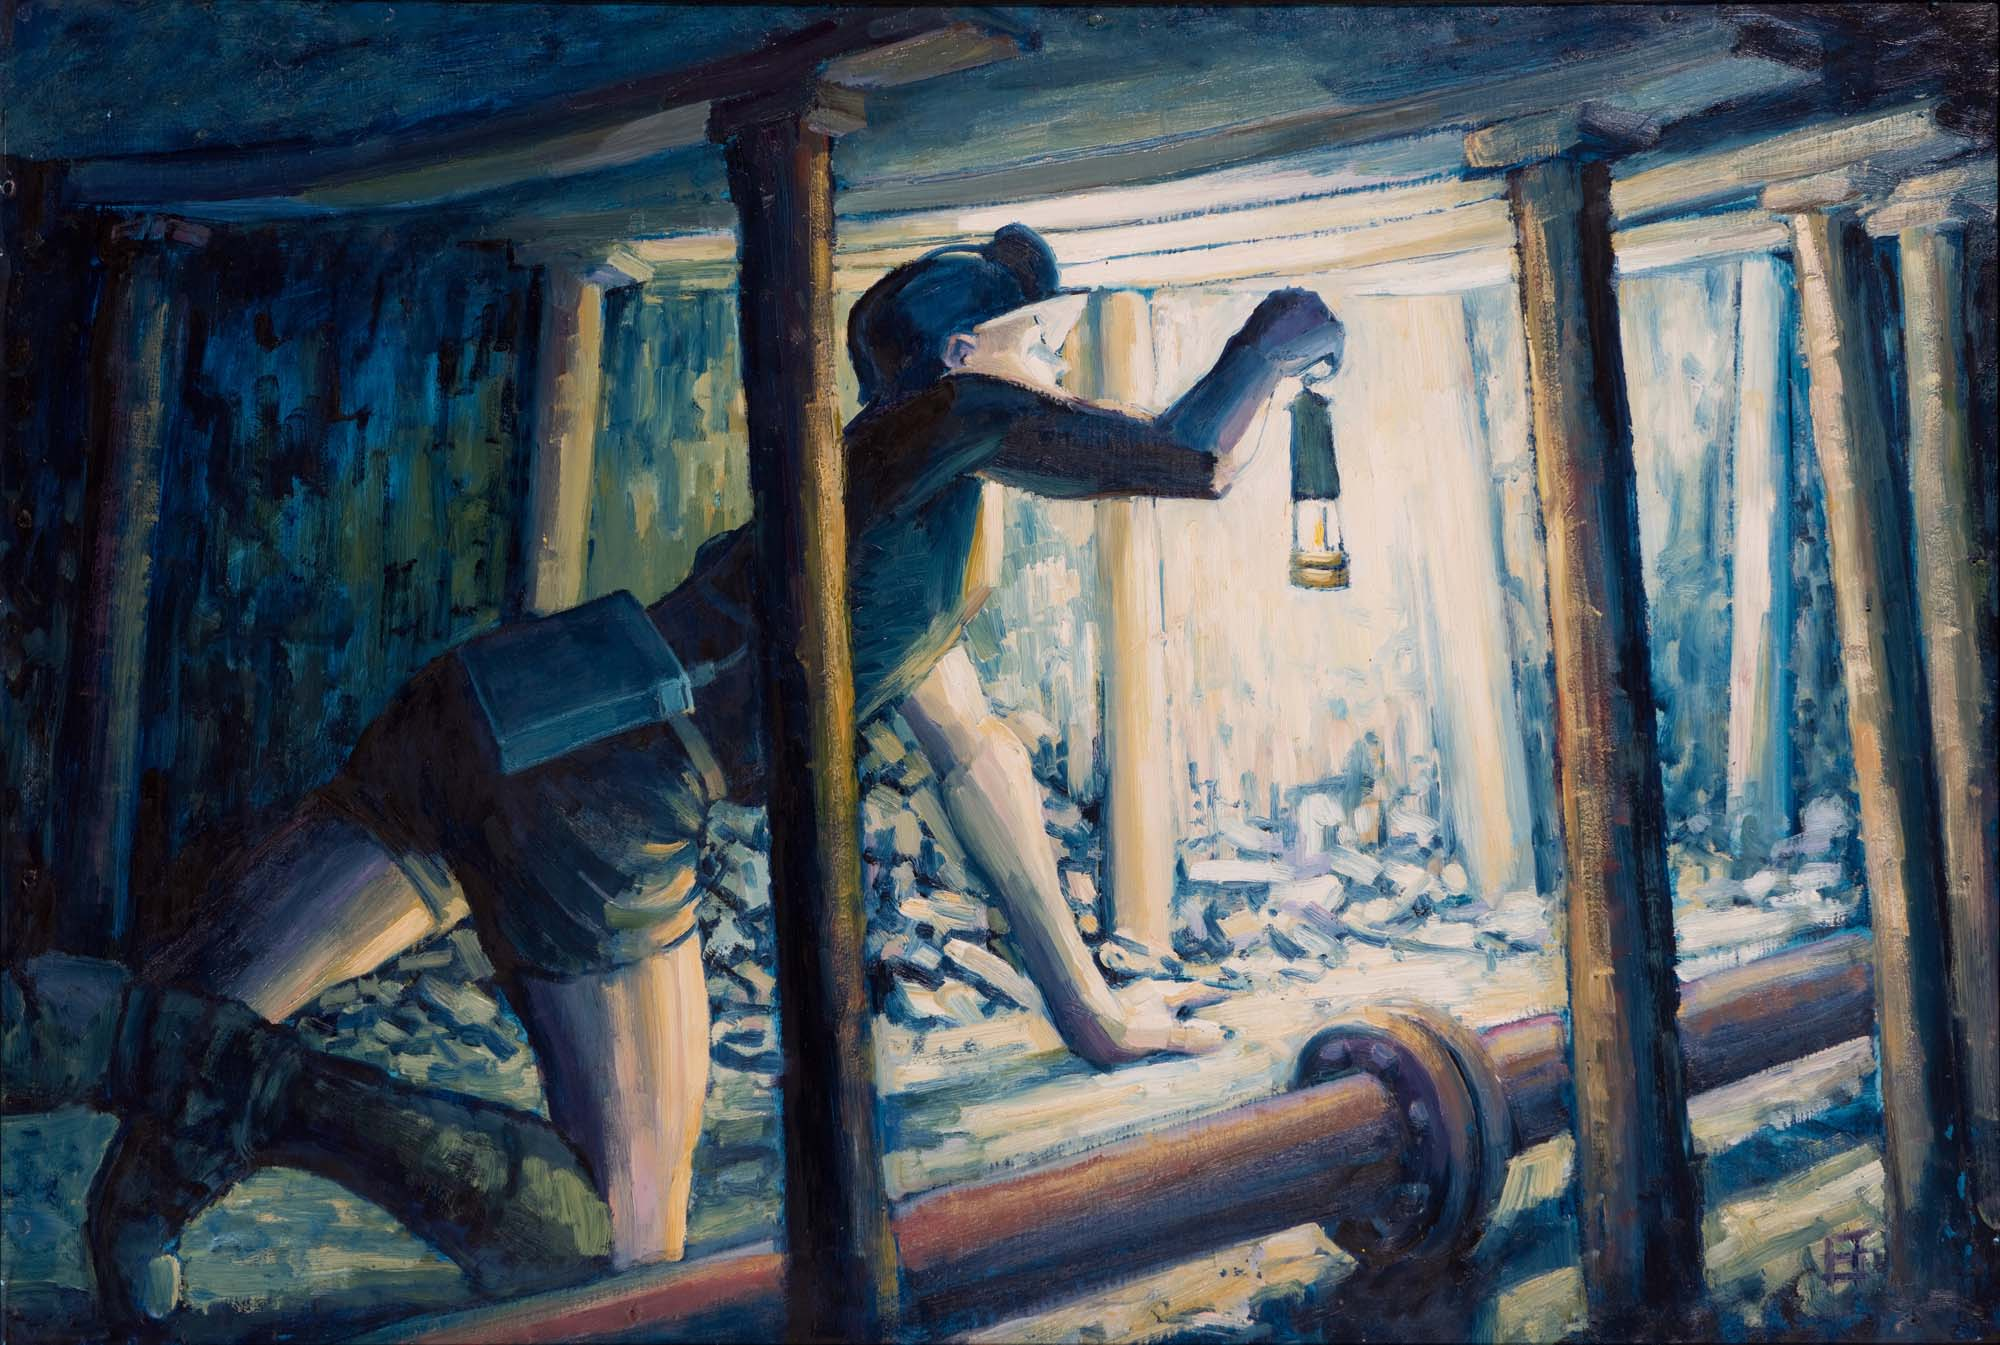 a painting of a miner on his hands and knees in a mine shaft holding up a lamp